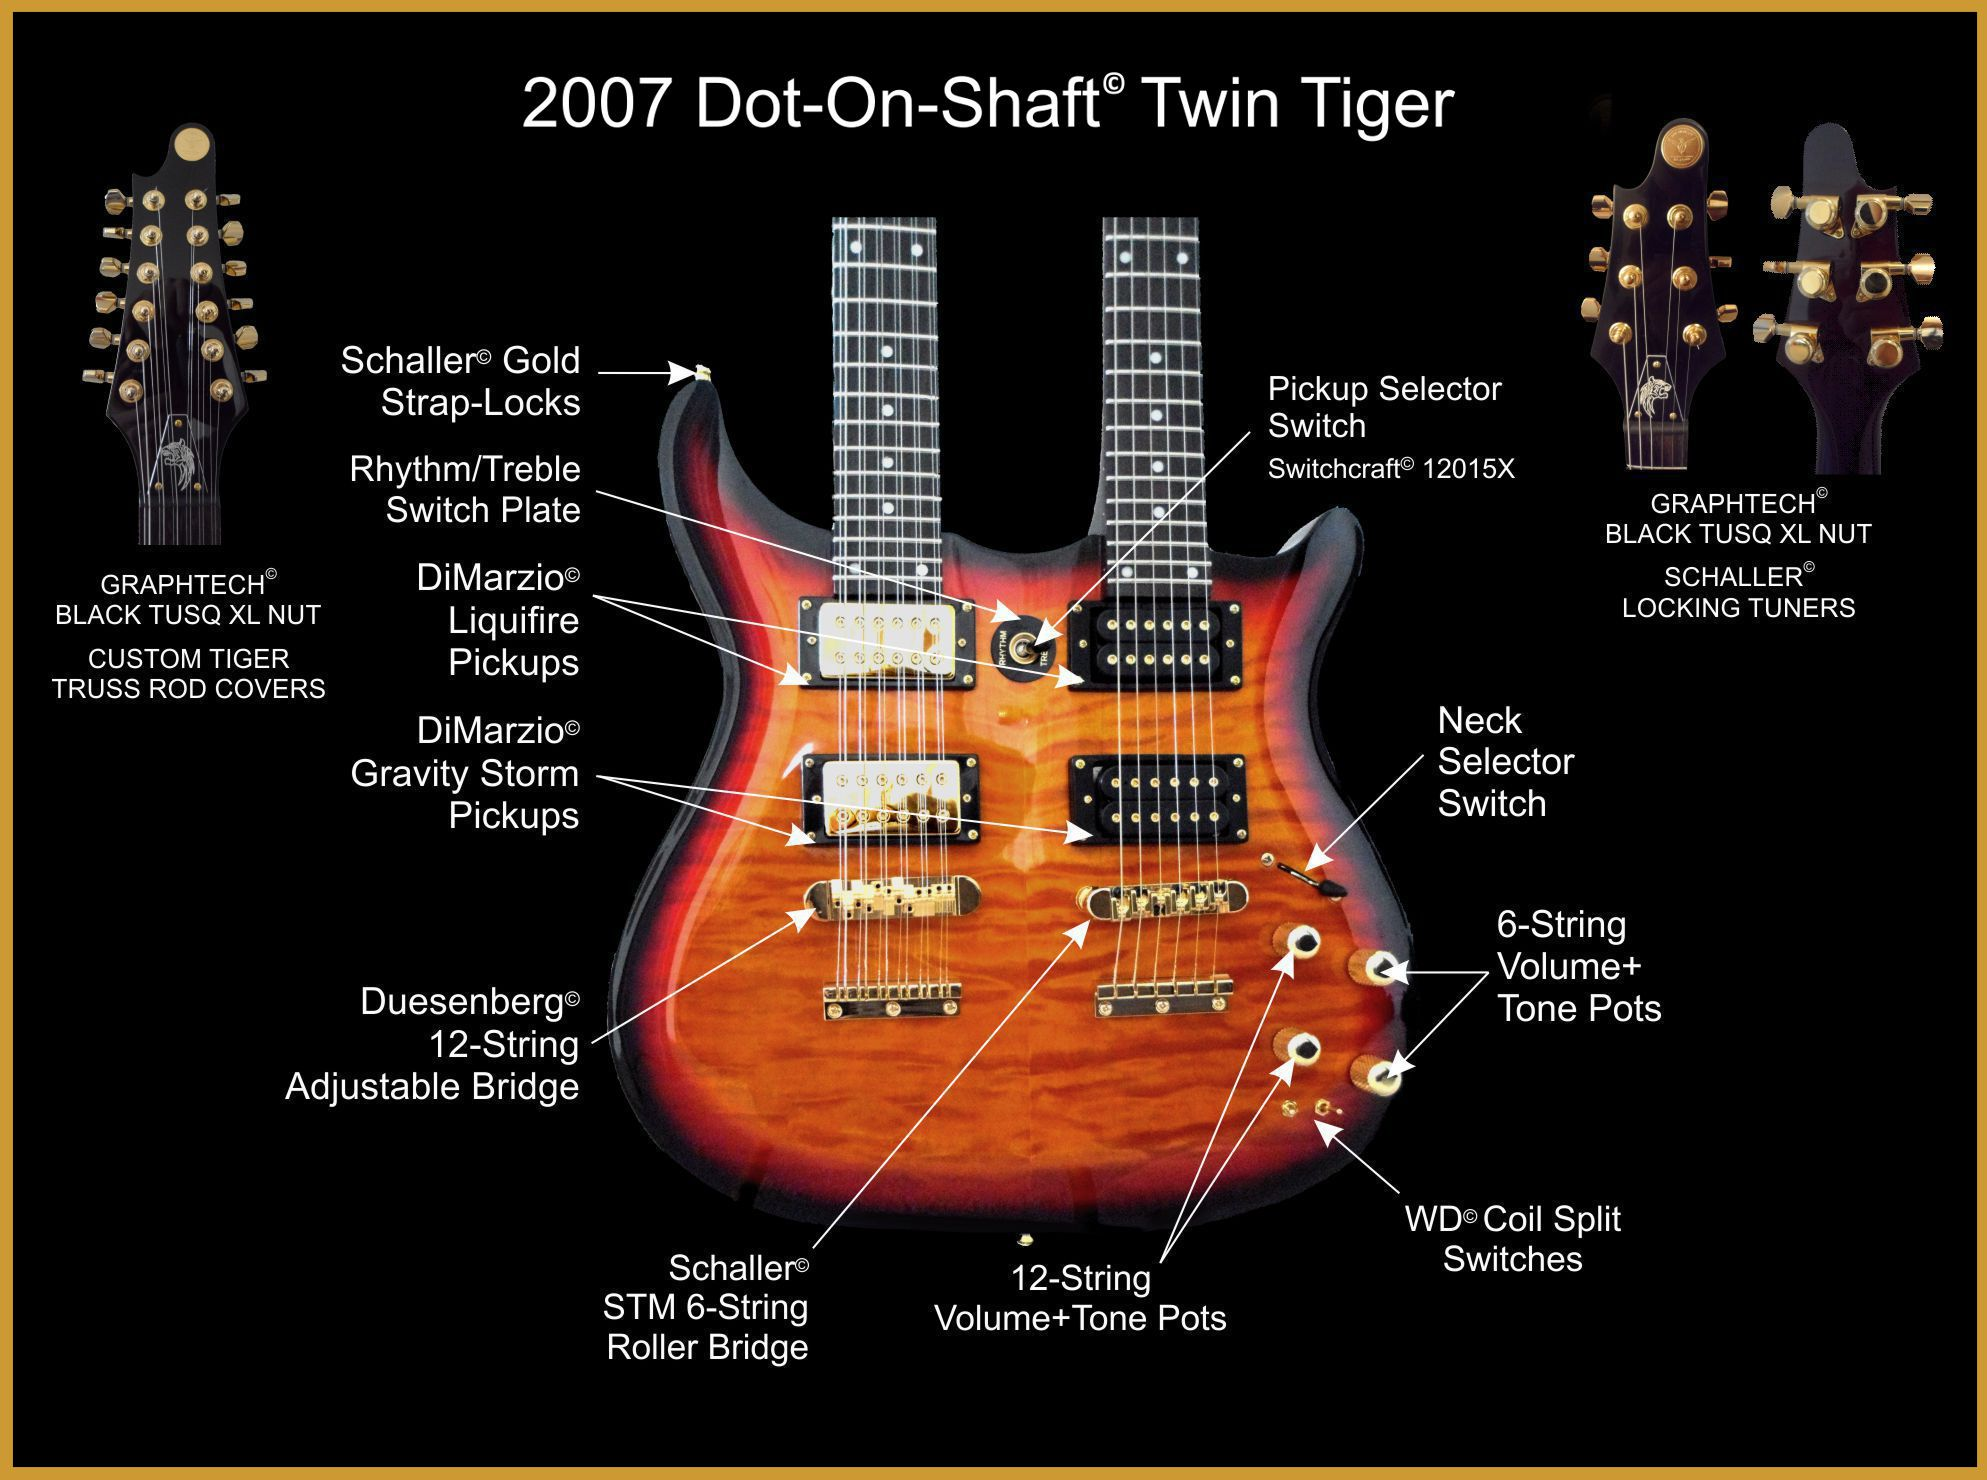 Wiring Diagram Hamer Guitar Page 5 And Schematics Tiger Truck Schematic Wiki Share On Symbols Chart Led Circuit Diagrams For Dimarzio